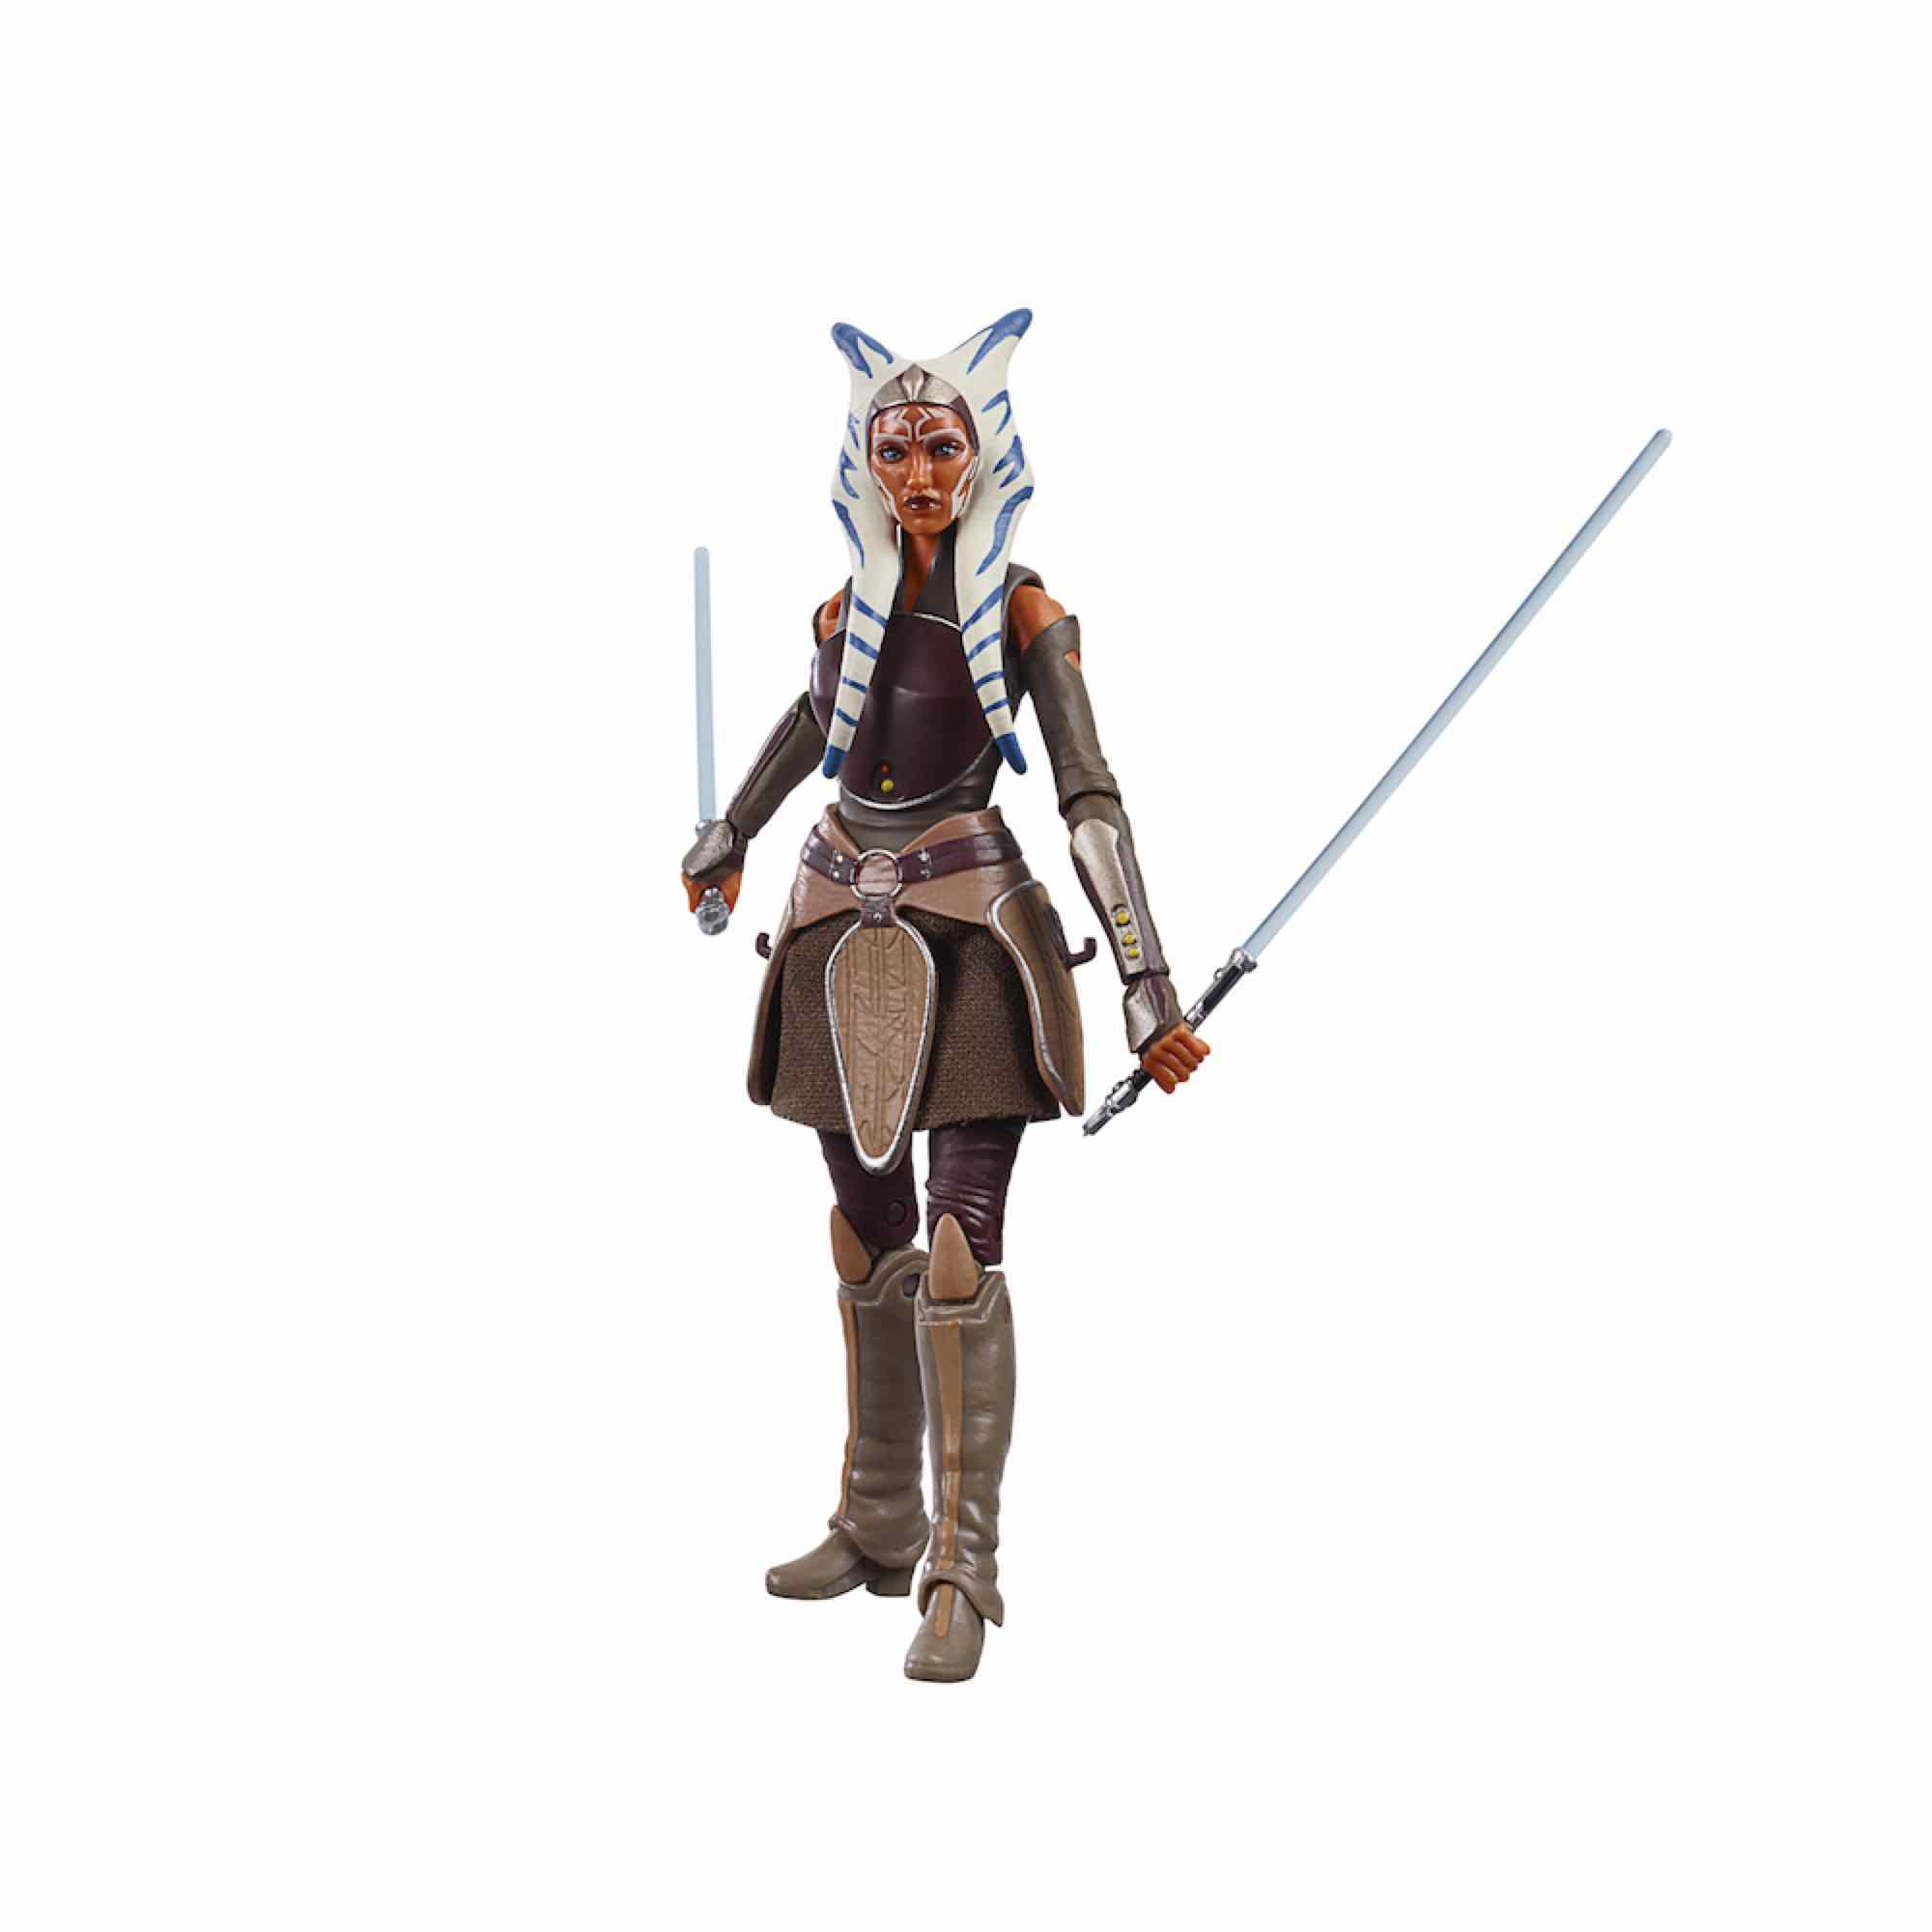 AHSOKA TANO FIGURA 15 CM BLACK SERIES STAR WARS REBELS